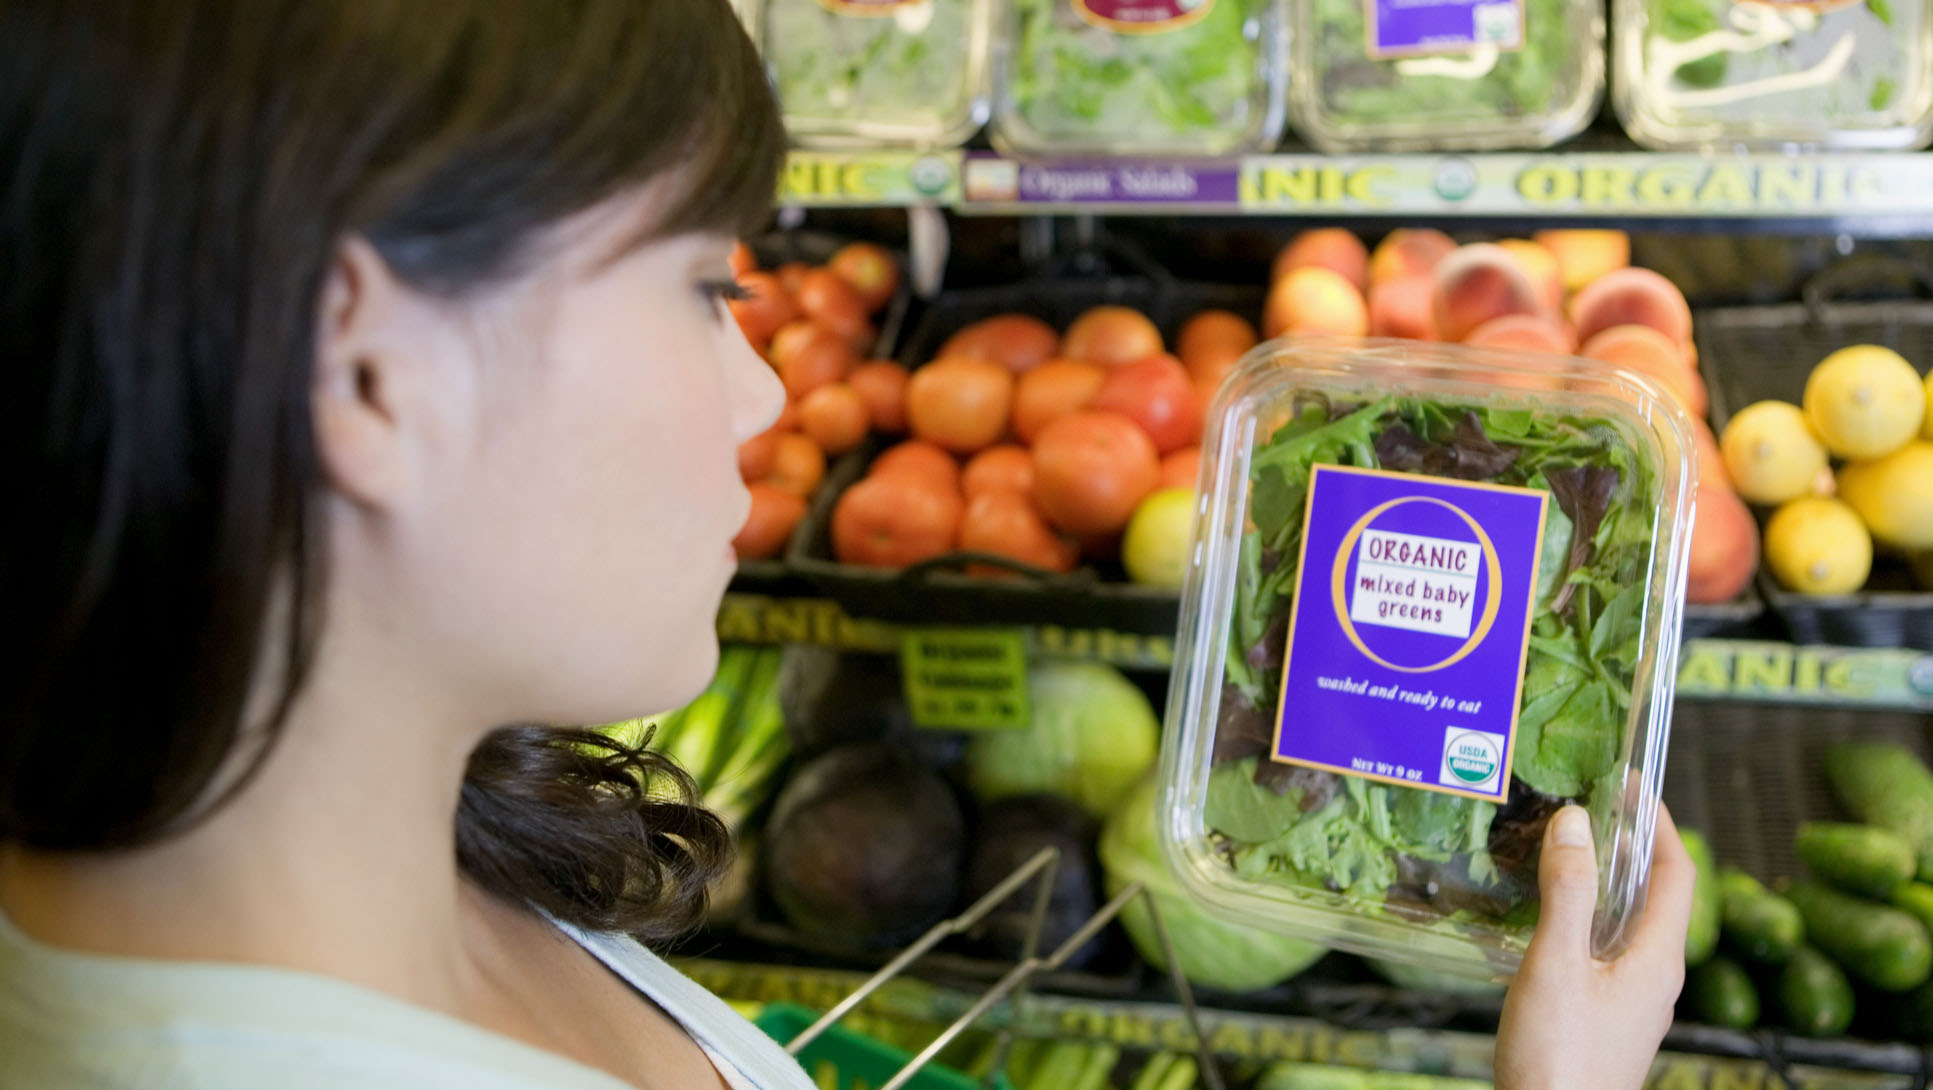 Woman looking at organic greens in the grocery store